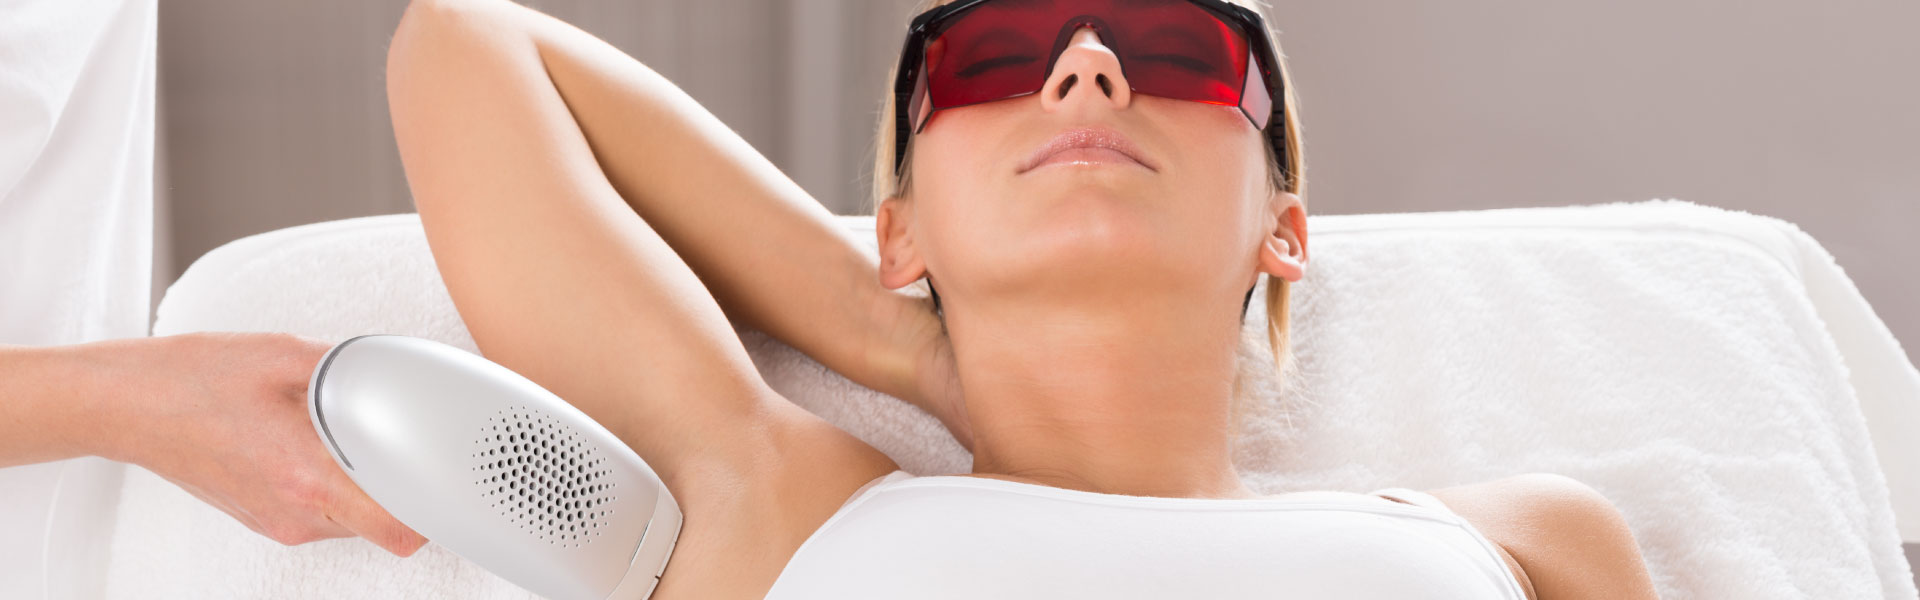 Cheshire Aesthetic Clinic | Inch Loss Skin Care and IPL Hair Removal | IPL hair removal